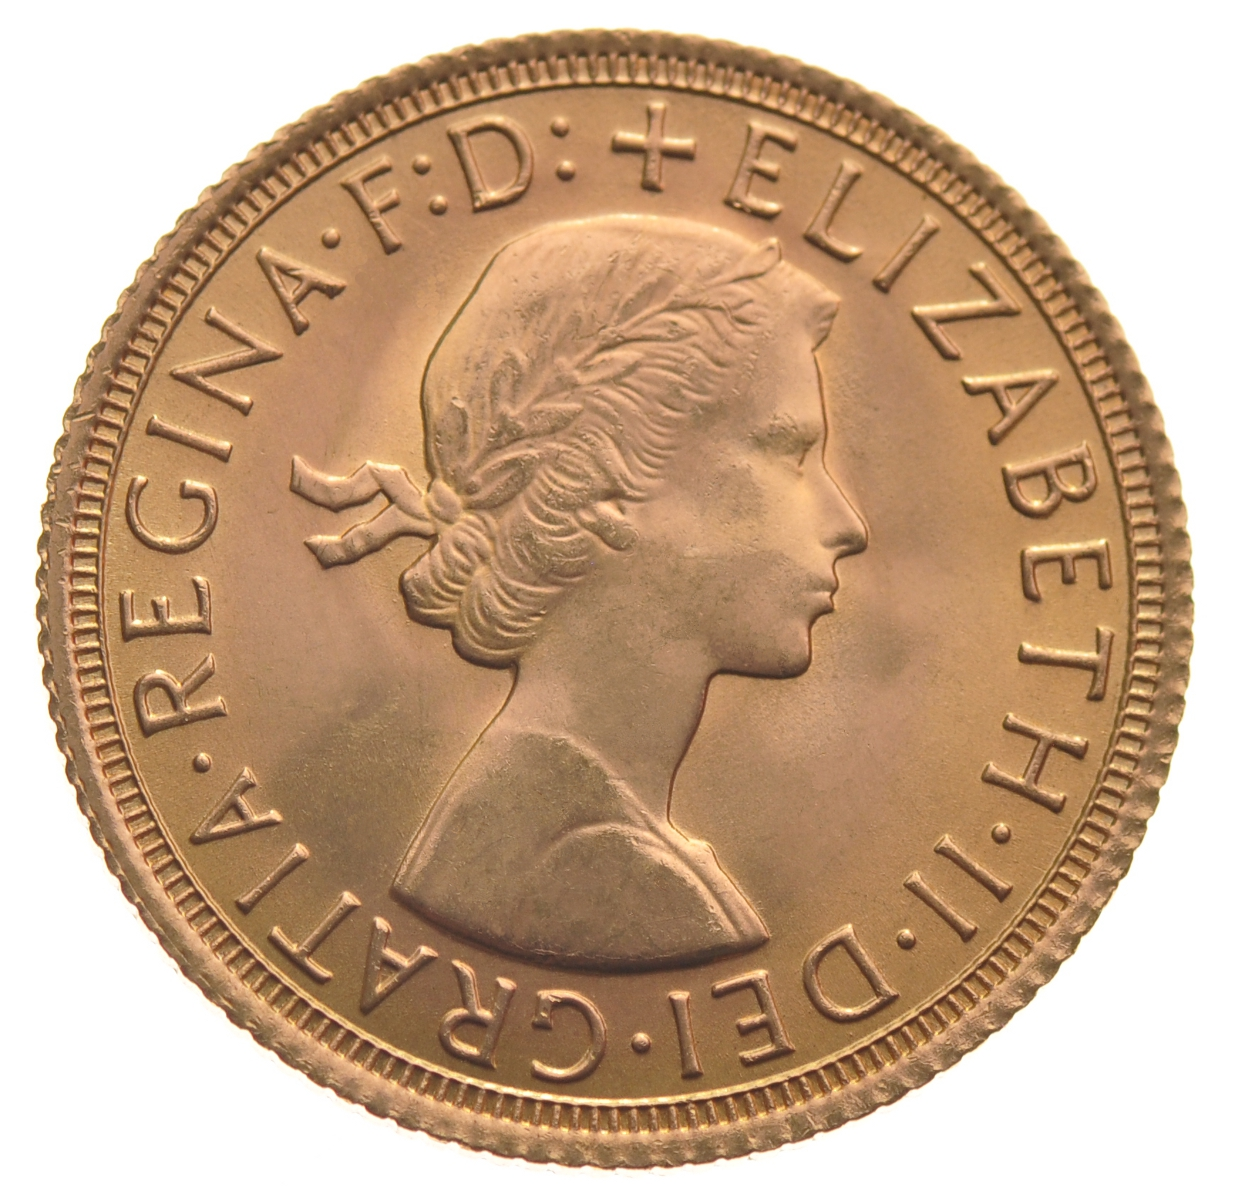 Sovereign - Elizabeth II, Young Head